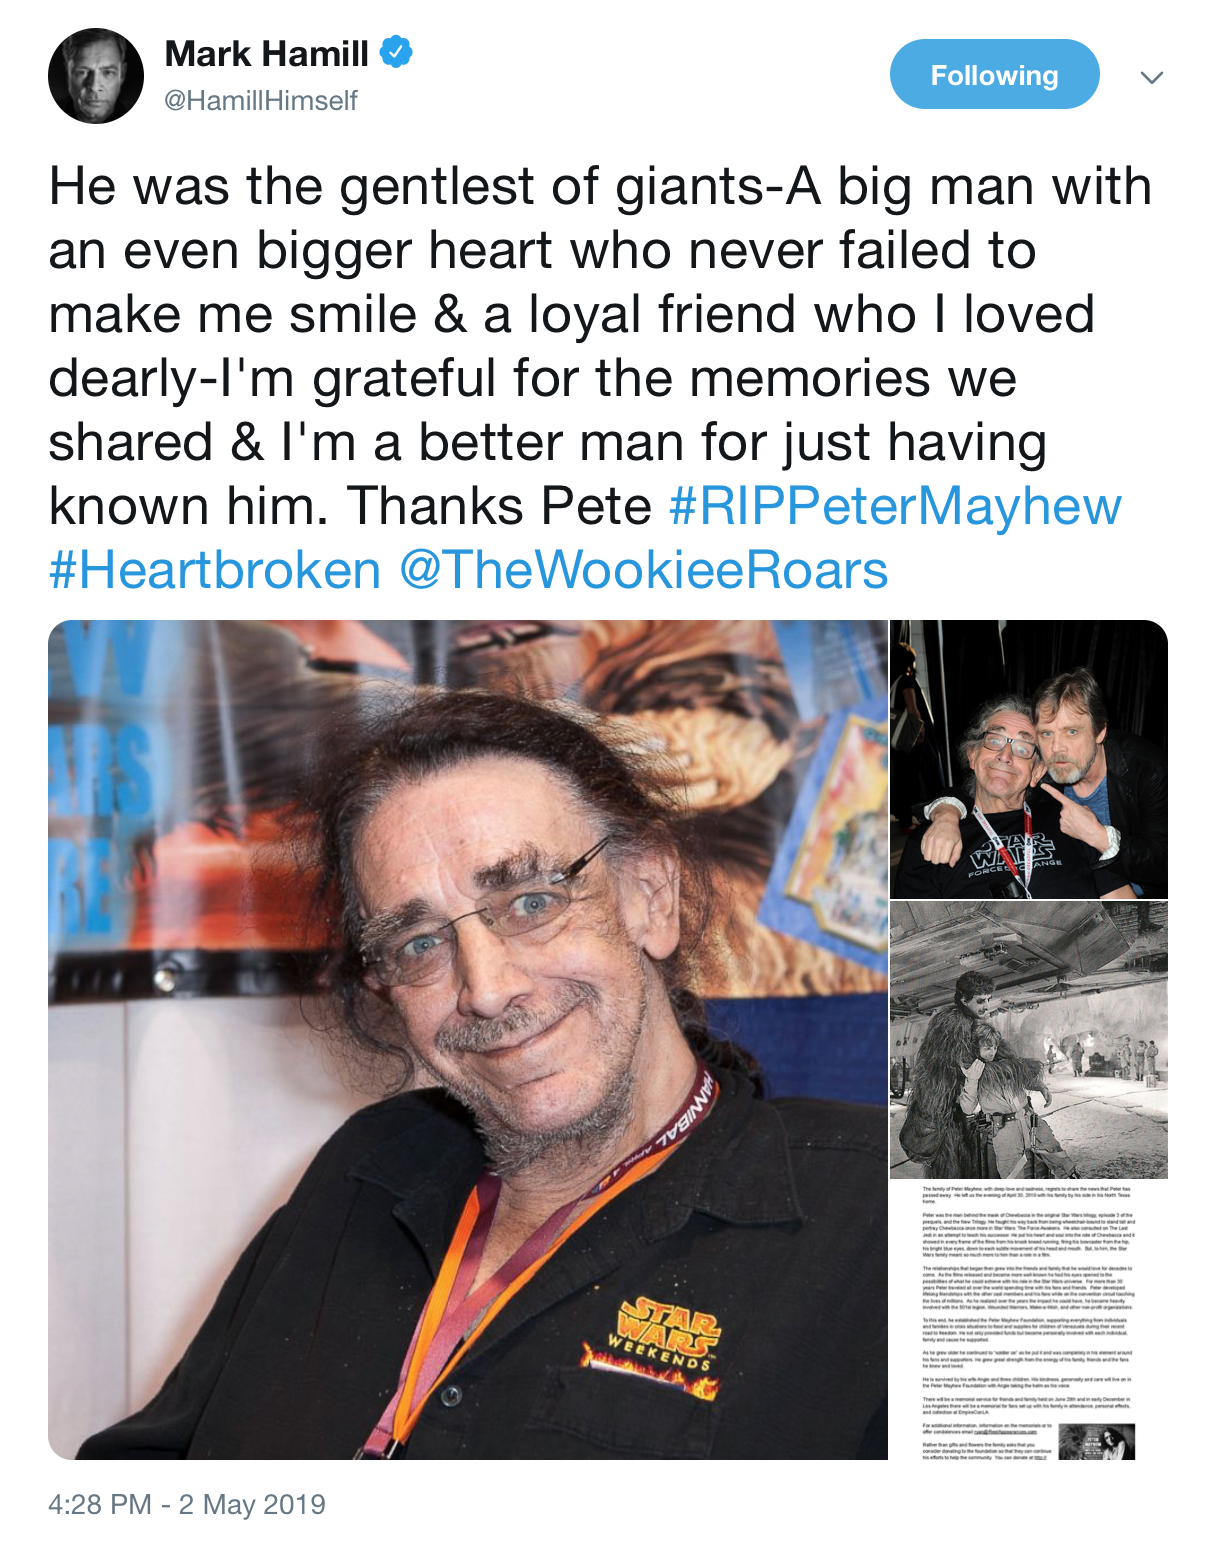 Mark Hamill's tweet regarding the passing of Mayhew.